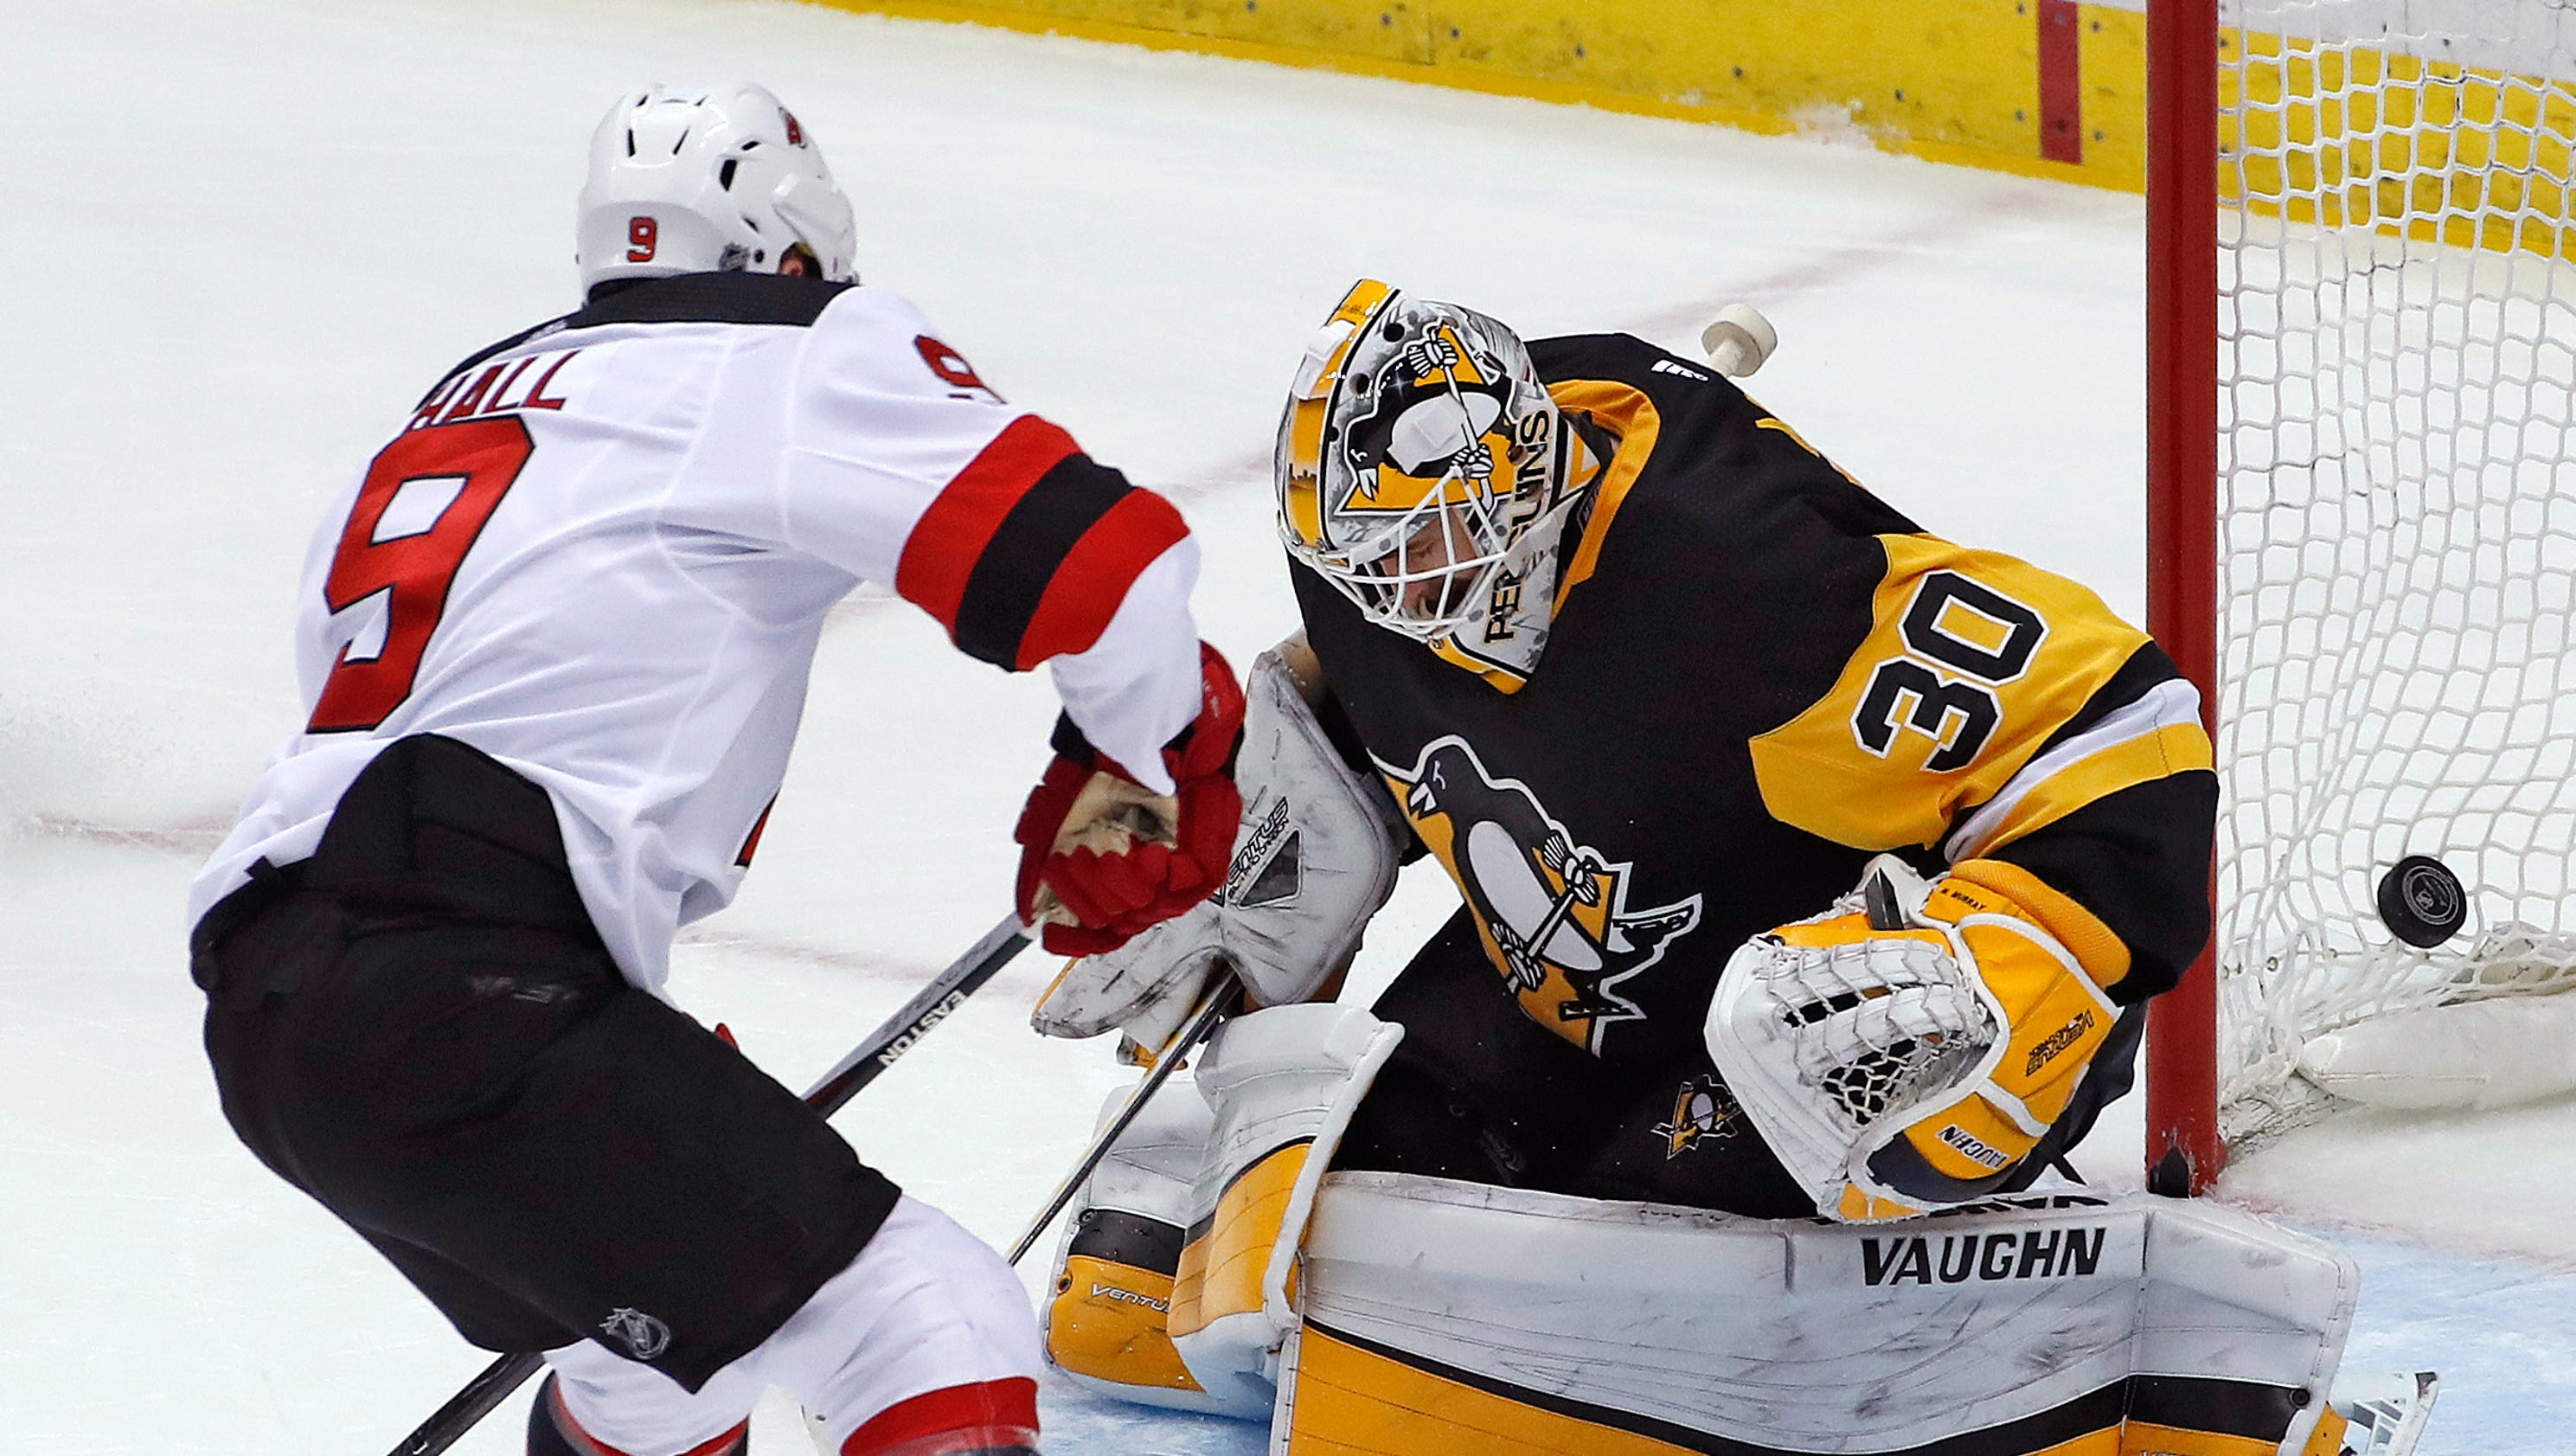 636574417768965455-ap-devils-penguins-hockey.1